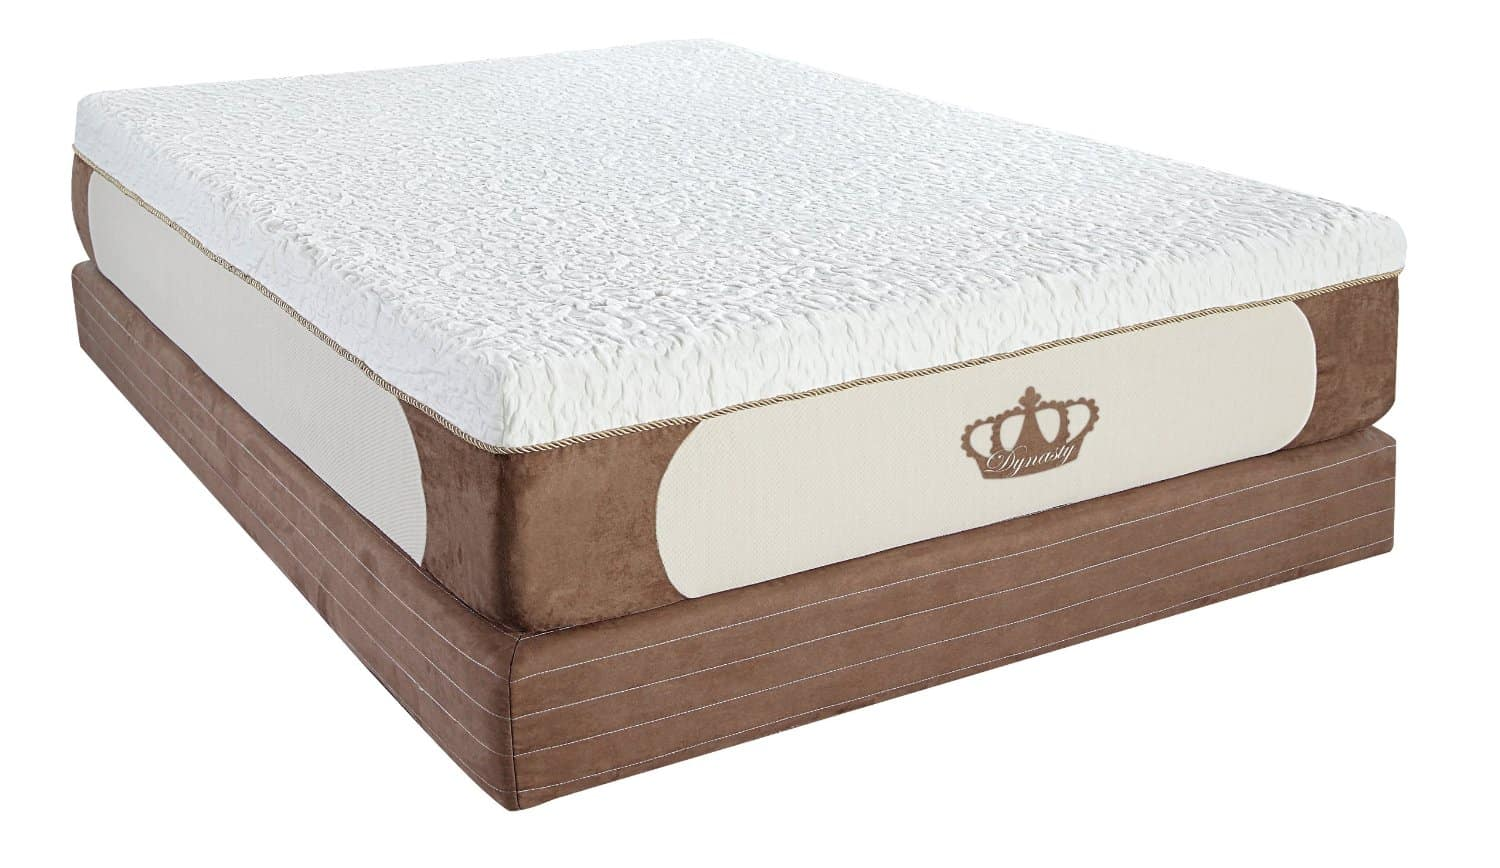 sleep dynastymattress in titan breeze brands cool inch mattresses memory gel new of fort mattress foam plush best classic ultimate